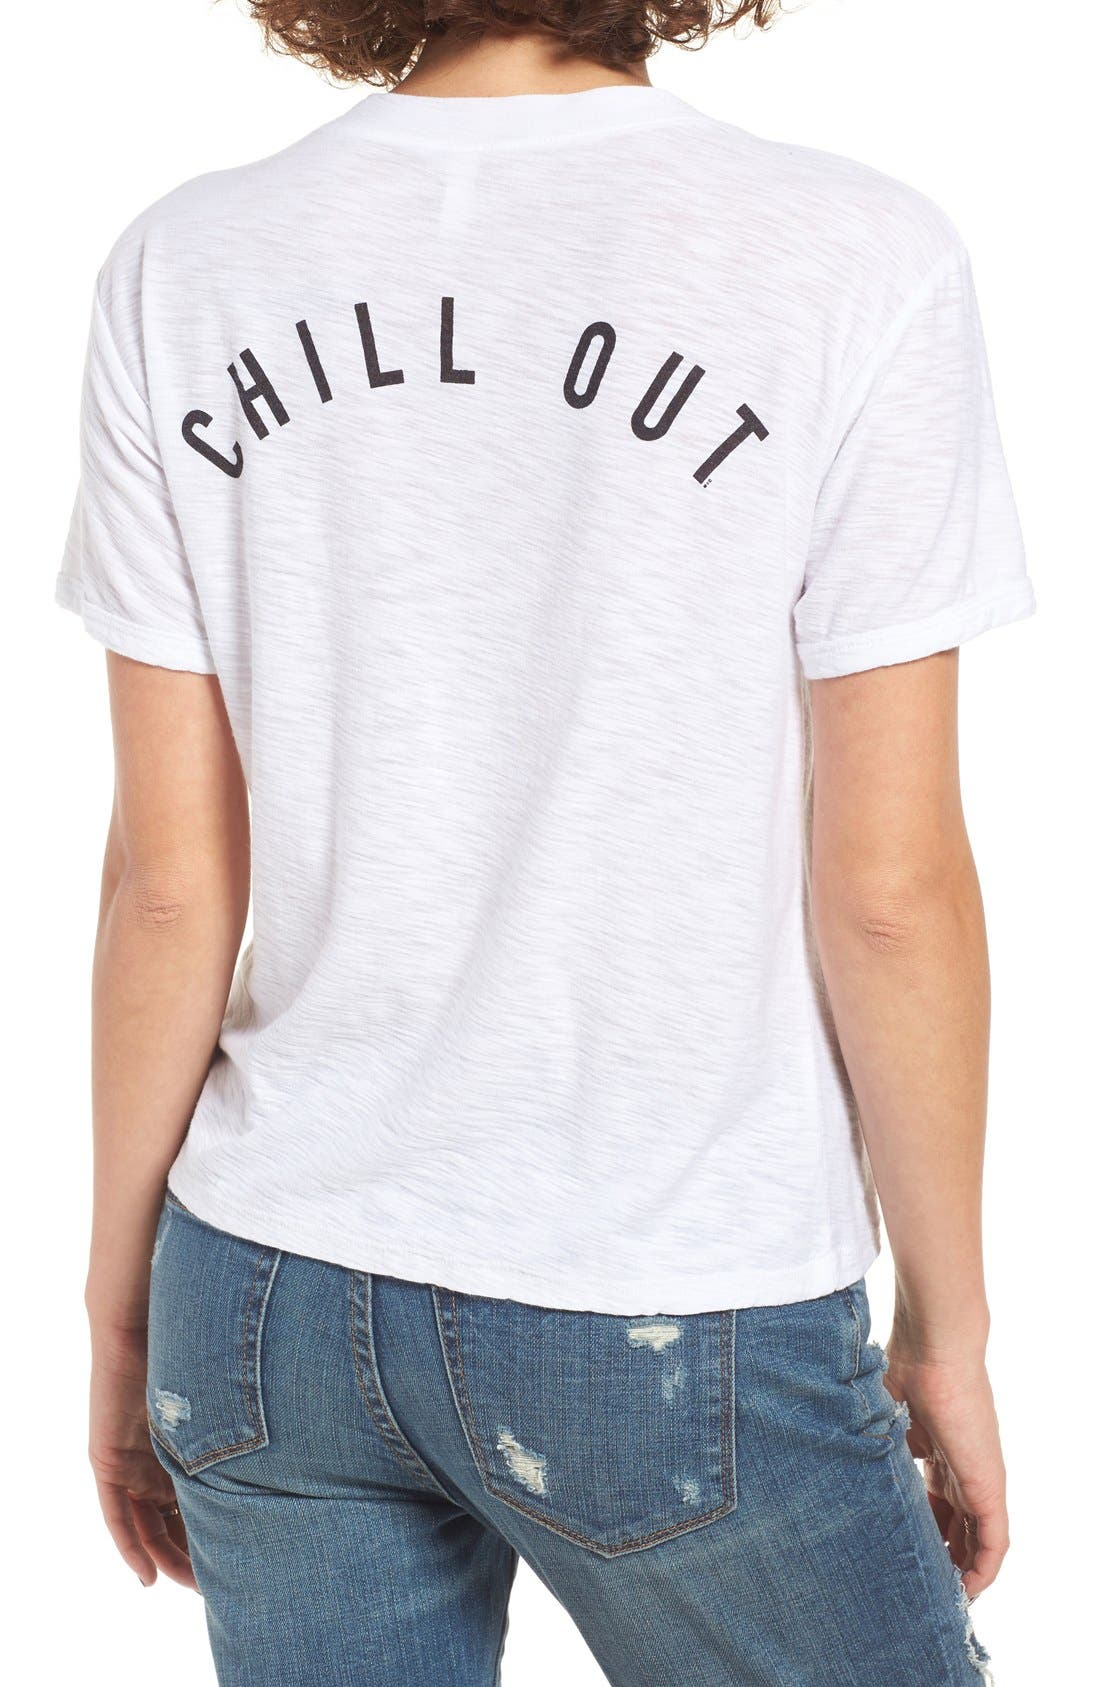 Alternate Image 1 Selected - Michelle by Comune Augsburg Chill Out Burnout Tee